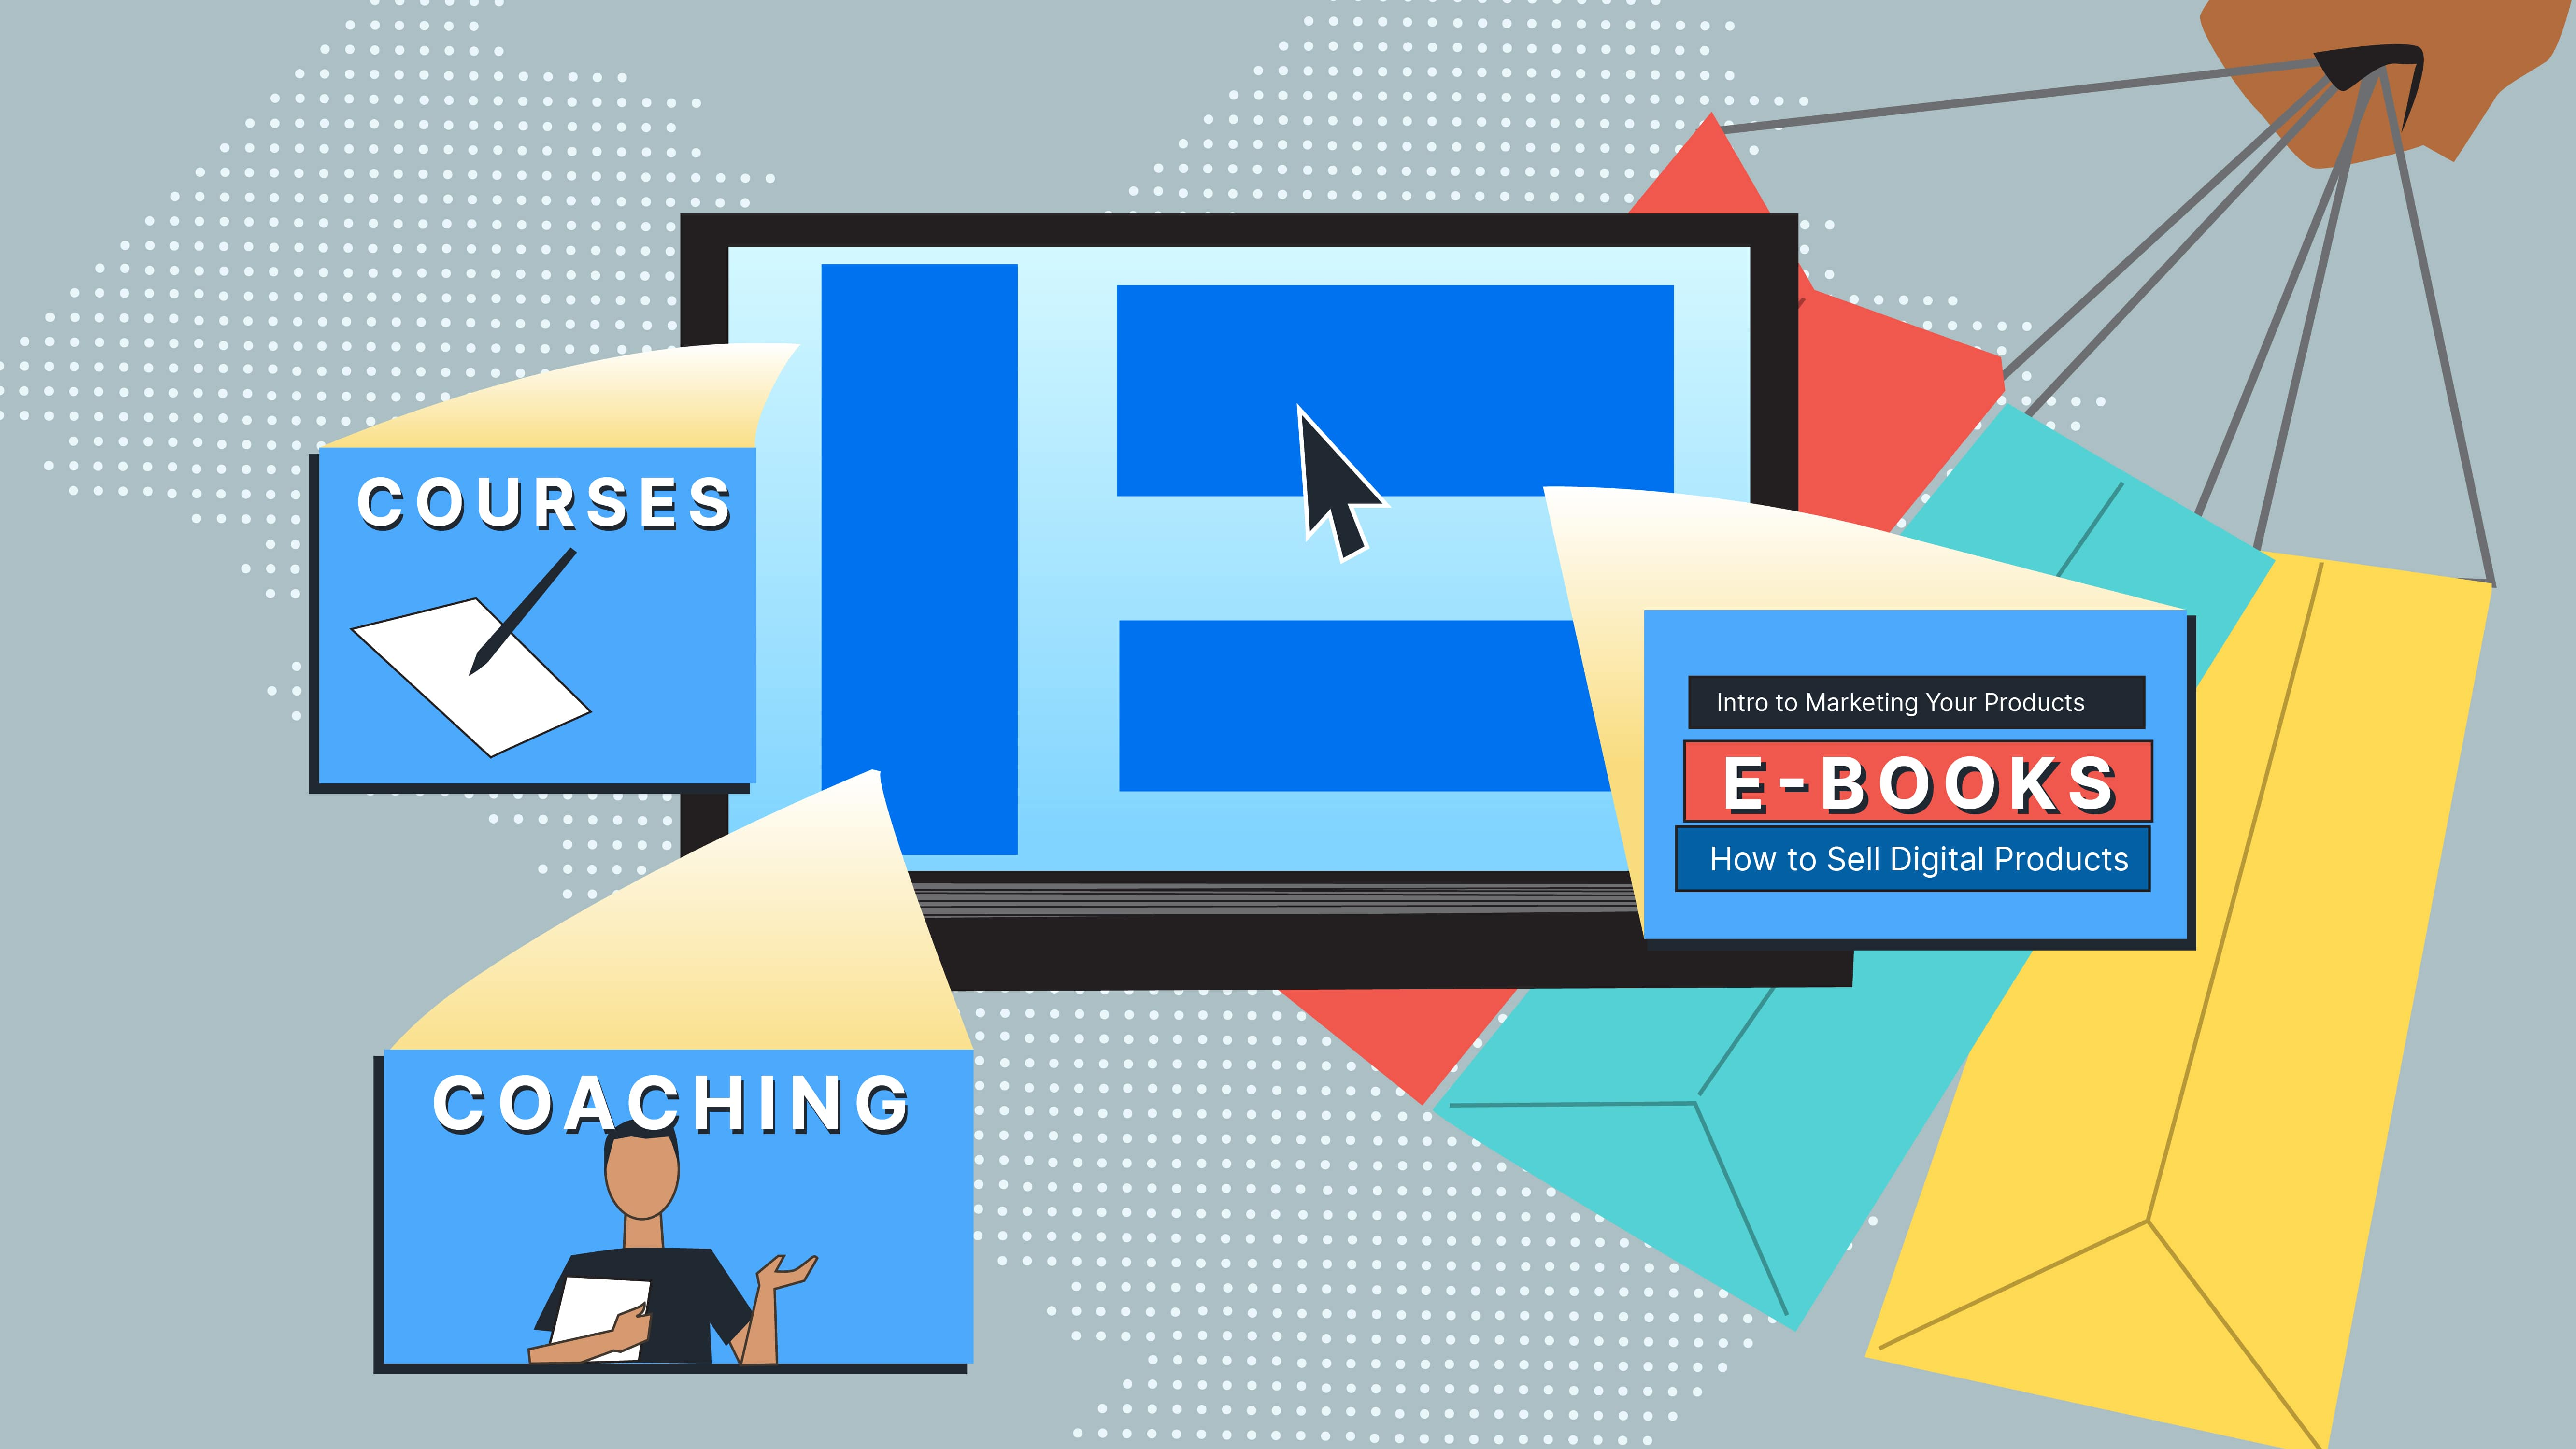 Illustration of a website with courses, coaching, and ebooks for sale on a sage green backdrop